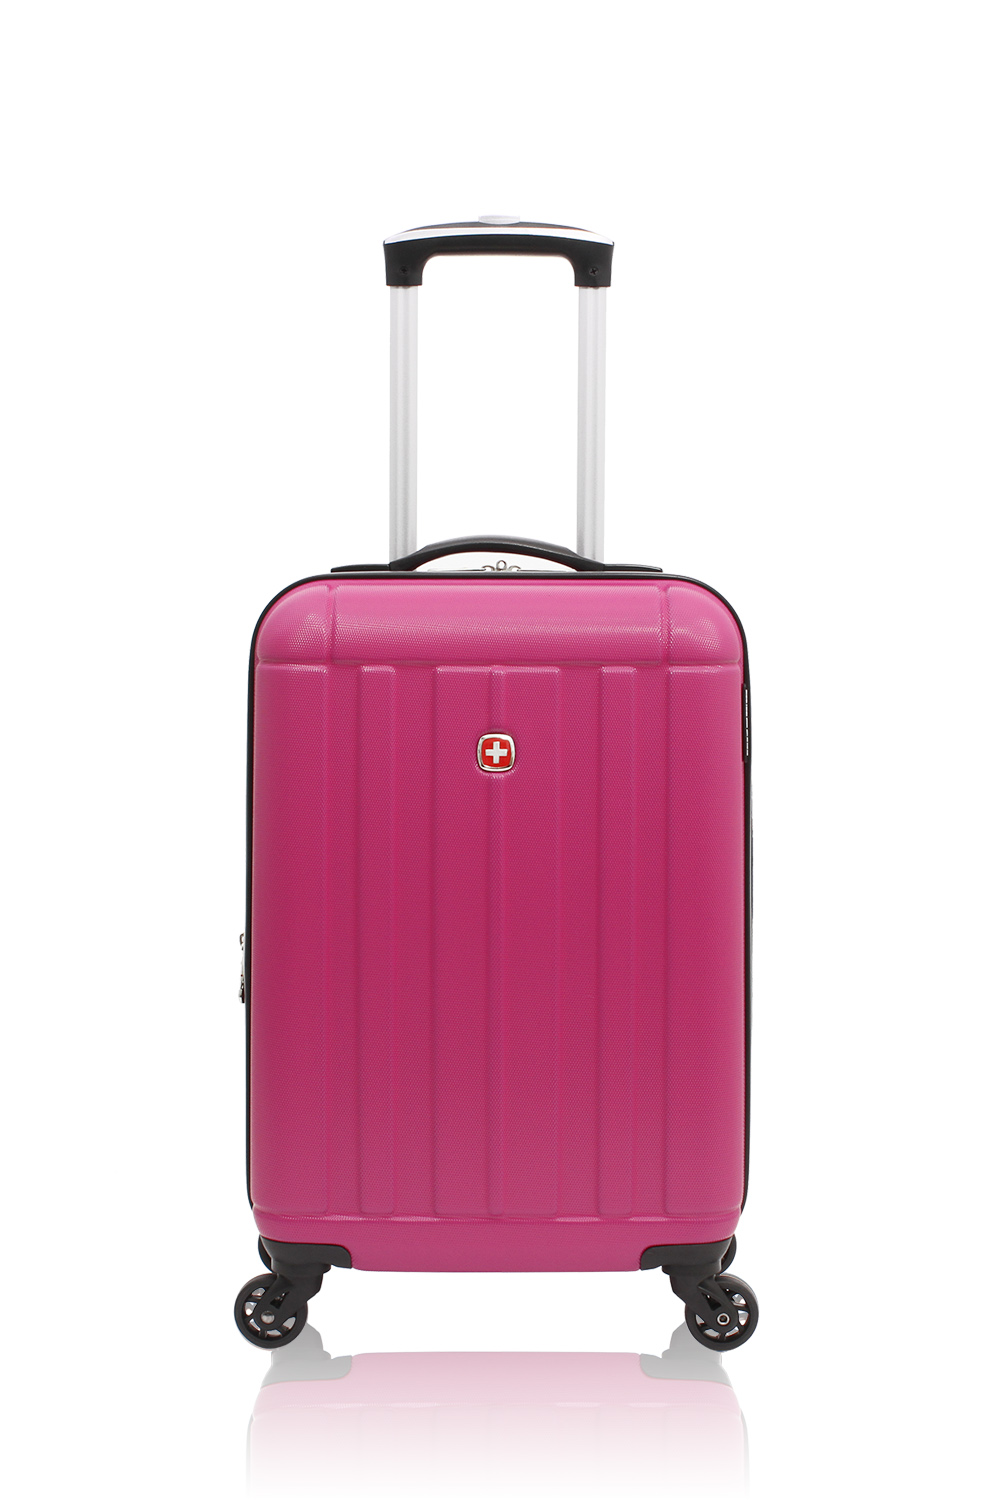 "SWISSGEAR 6297 19"" Expandable Hardside Spinner Luggage"